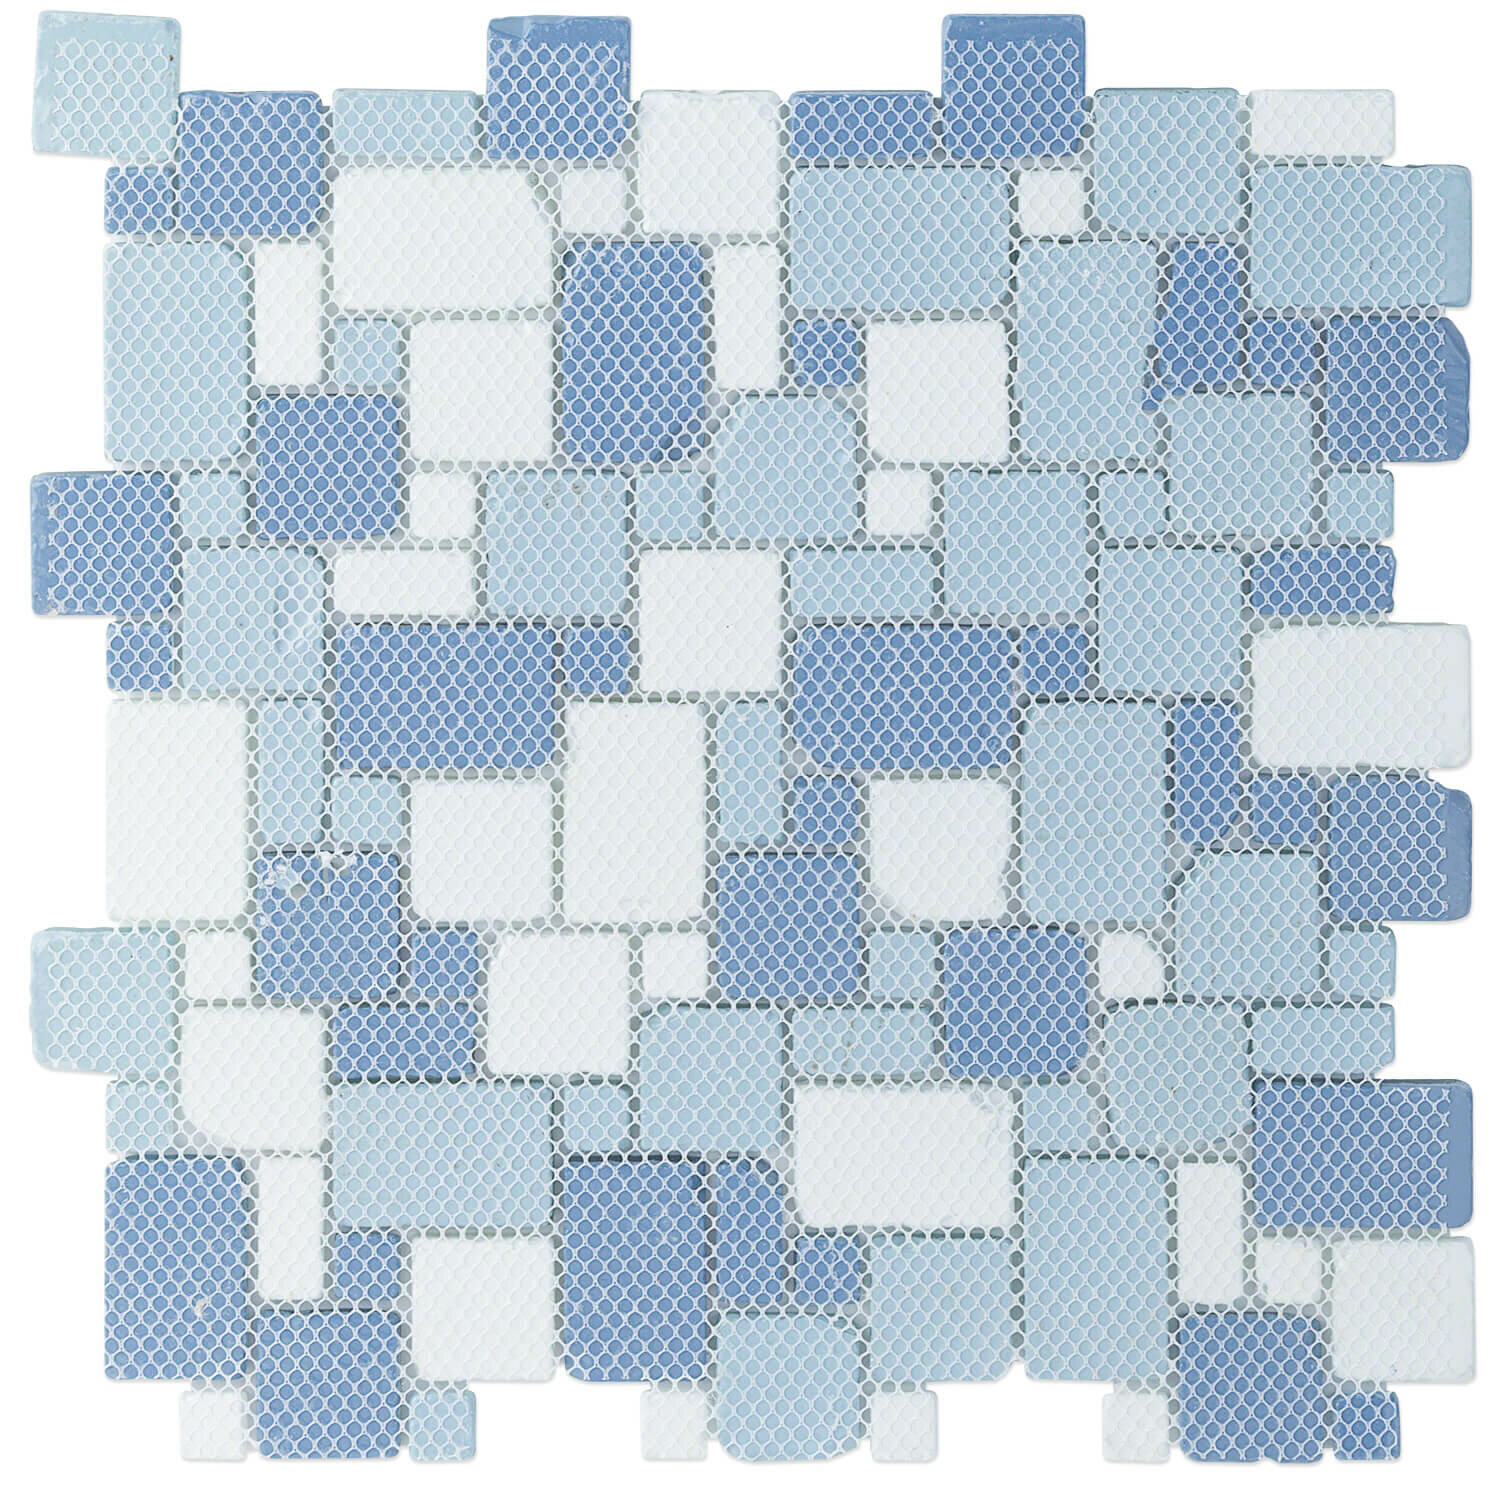 Ivy Hill Tile Ocean Wave French Beached Random Sized Glass Mosaic Tile In Blue Reviews Wayfair Ca